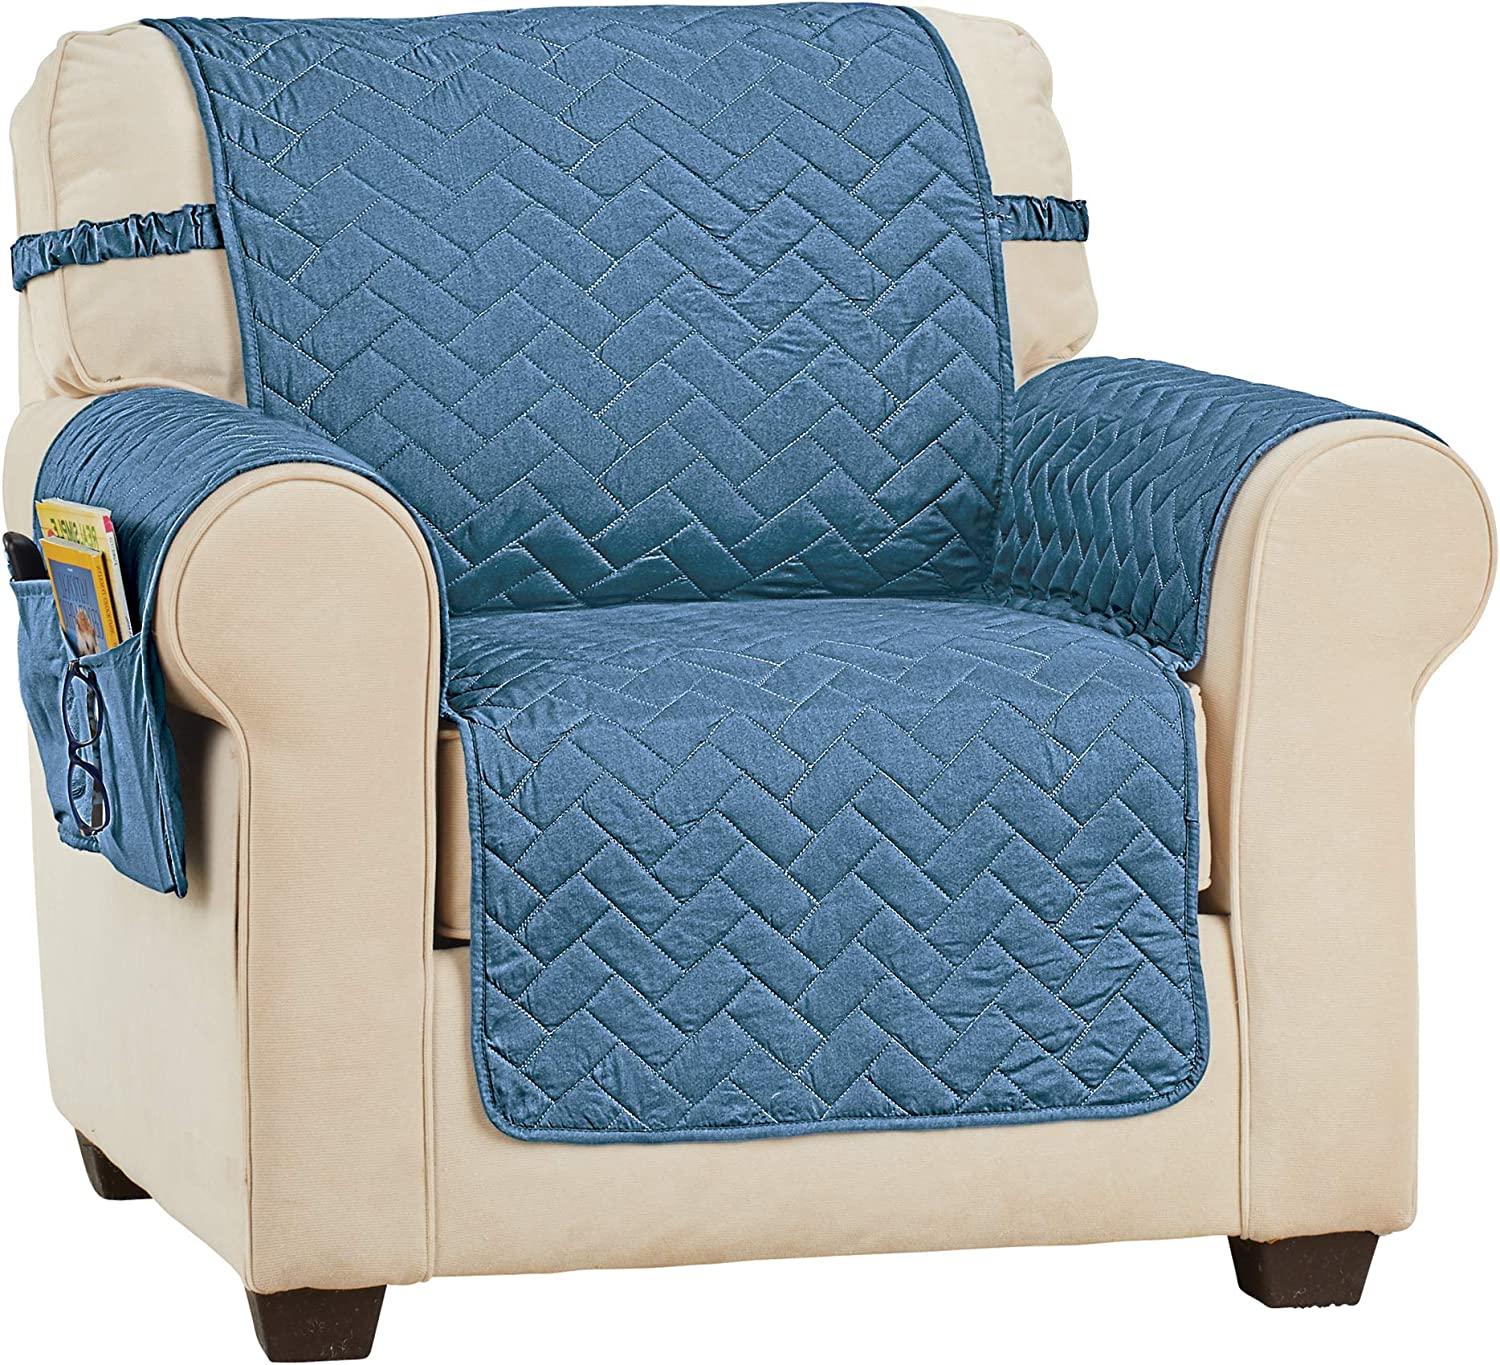 Collections OFFicial store Etc Versatile Chevron-Textured Protector Directly managed store Furniture S